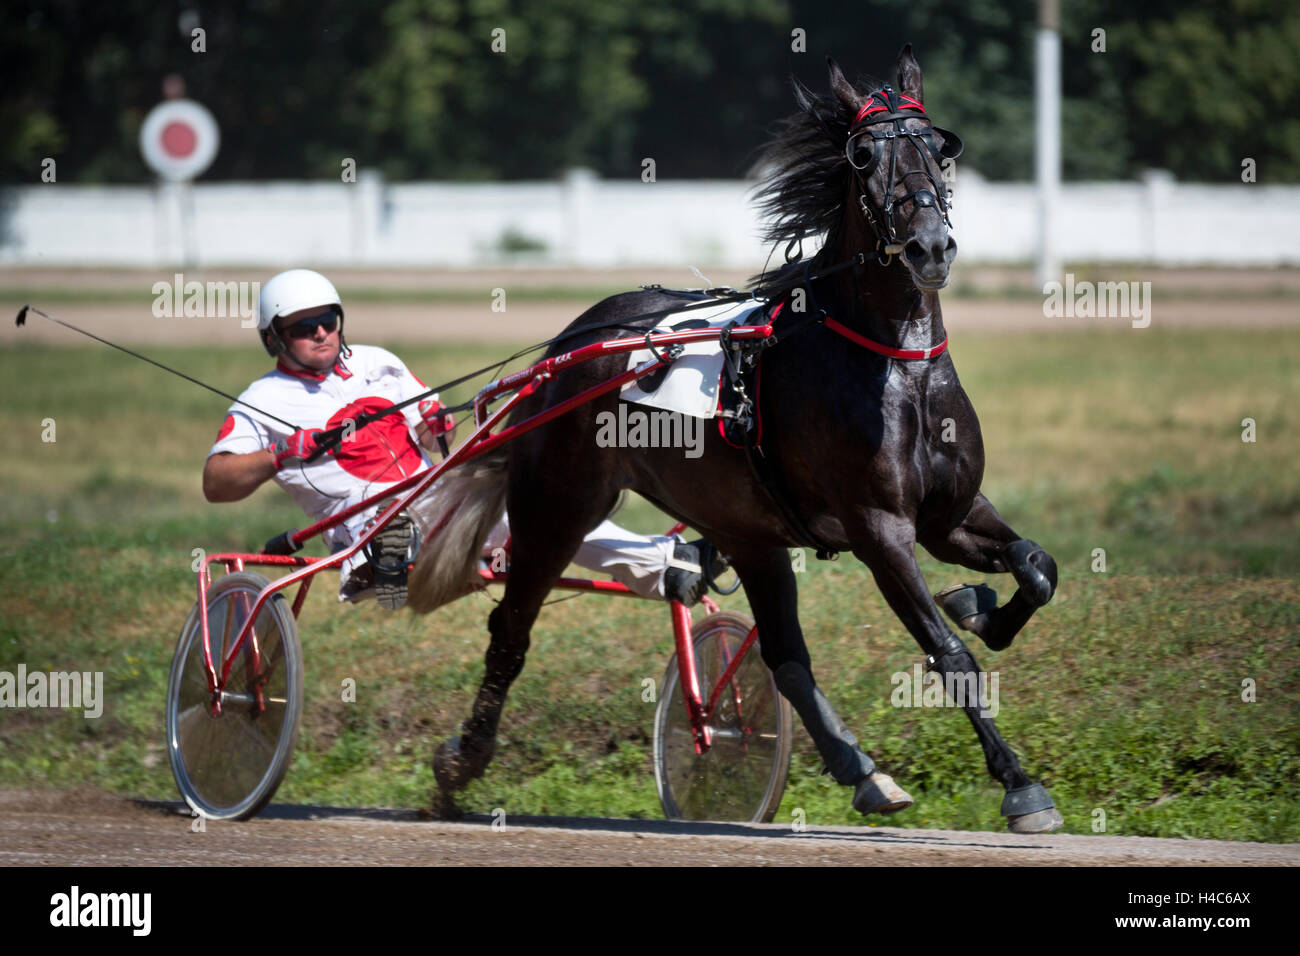 A trotting-horse race dedicated at the Moscow racecourse, Russia - Stock Image